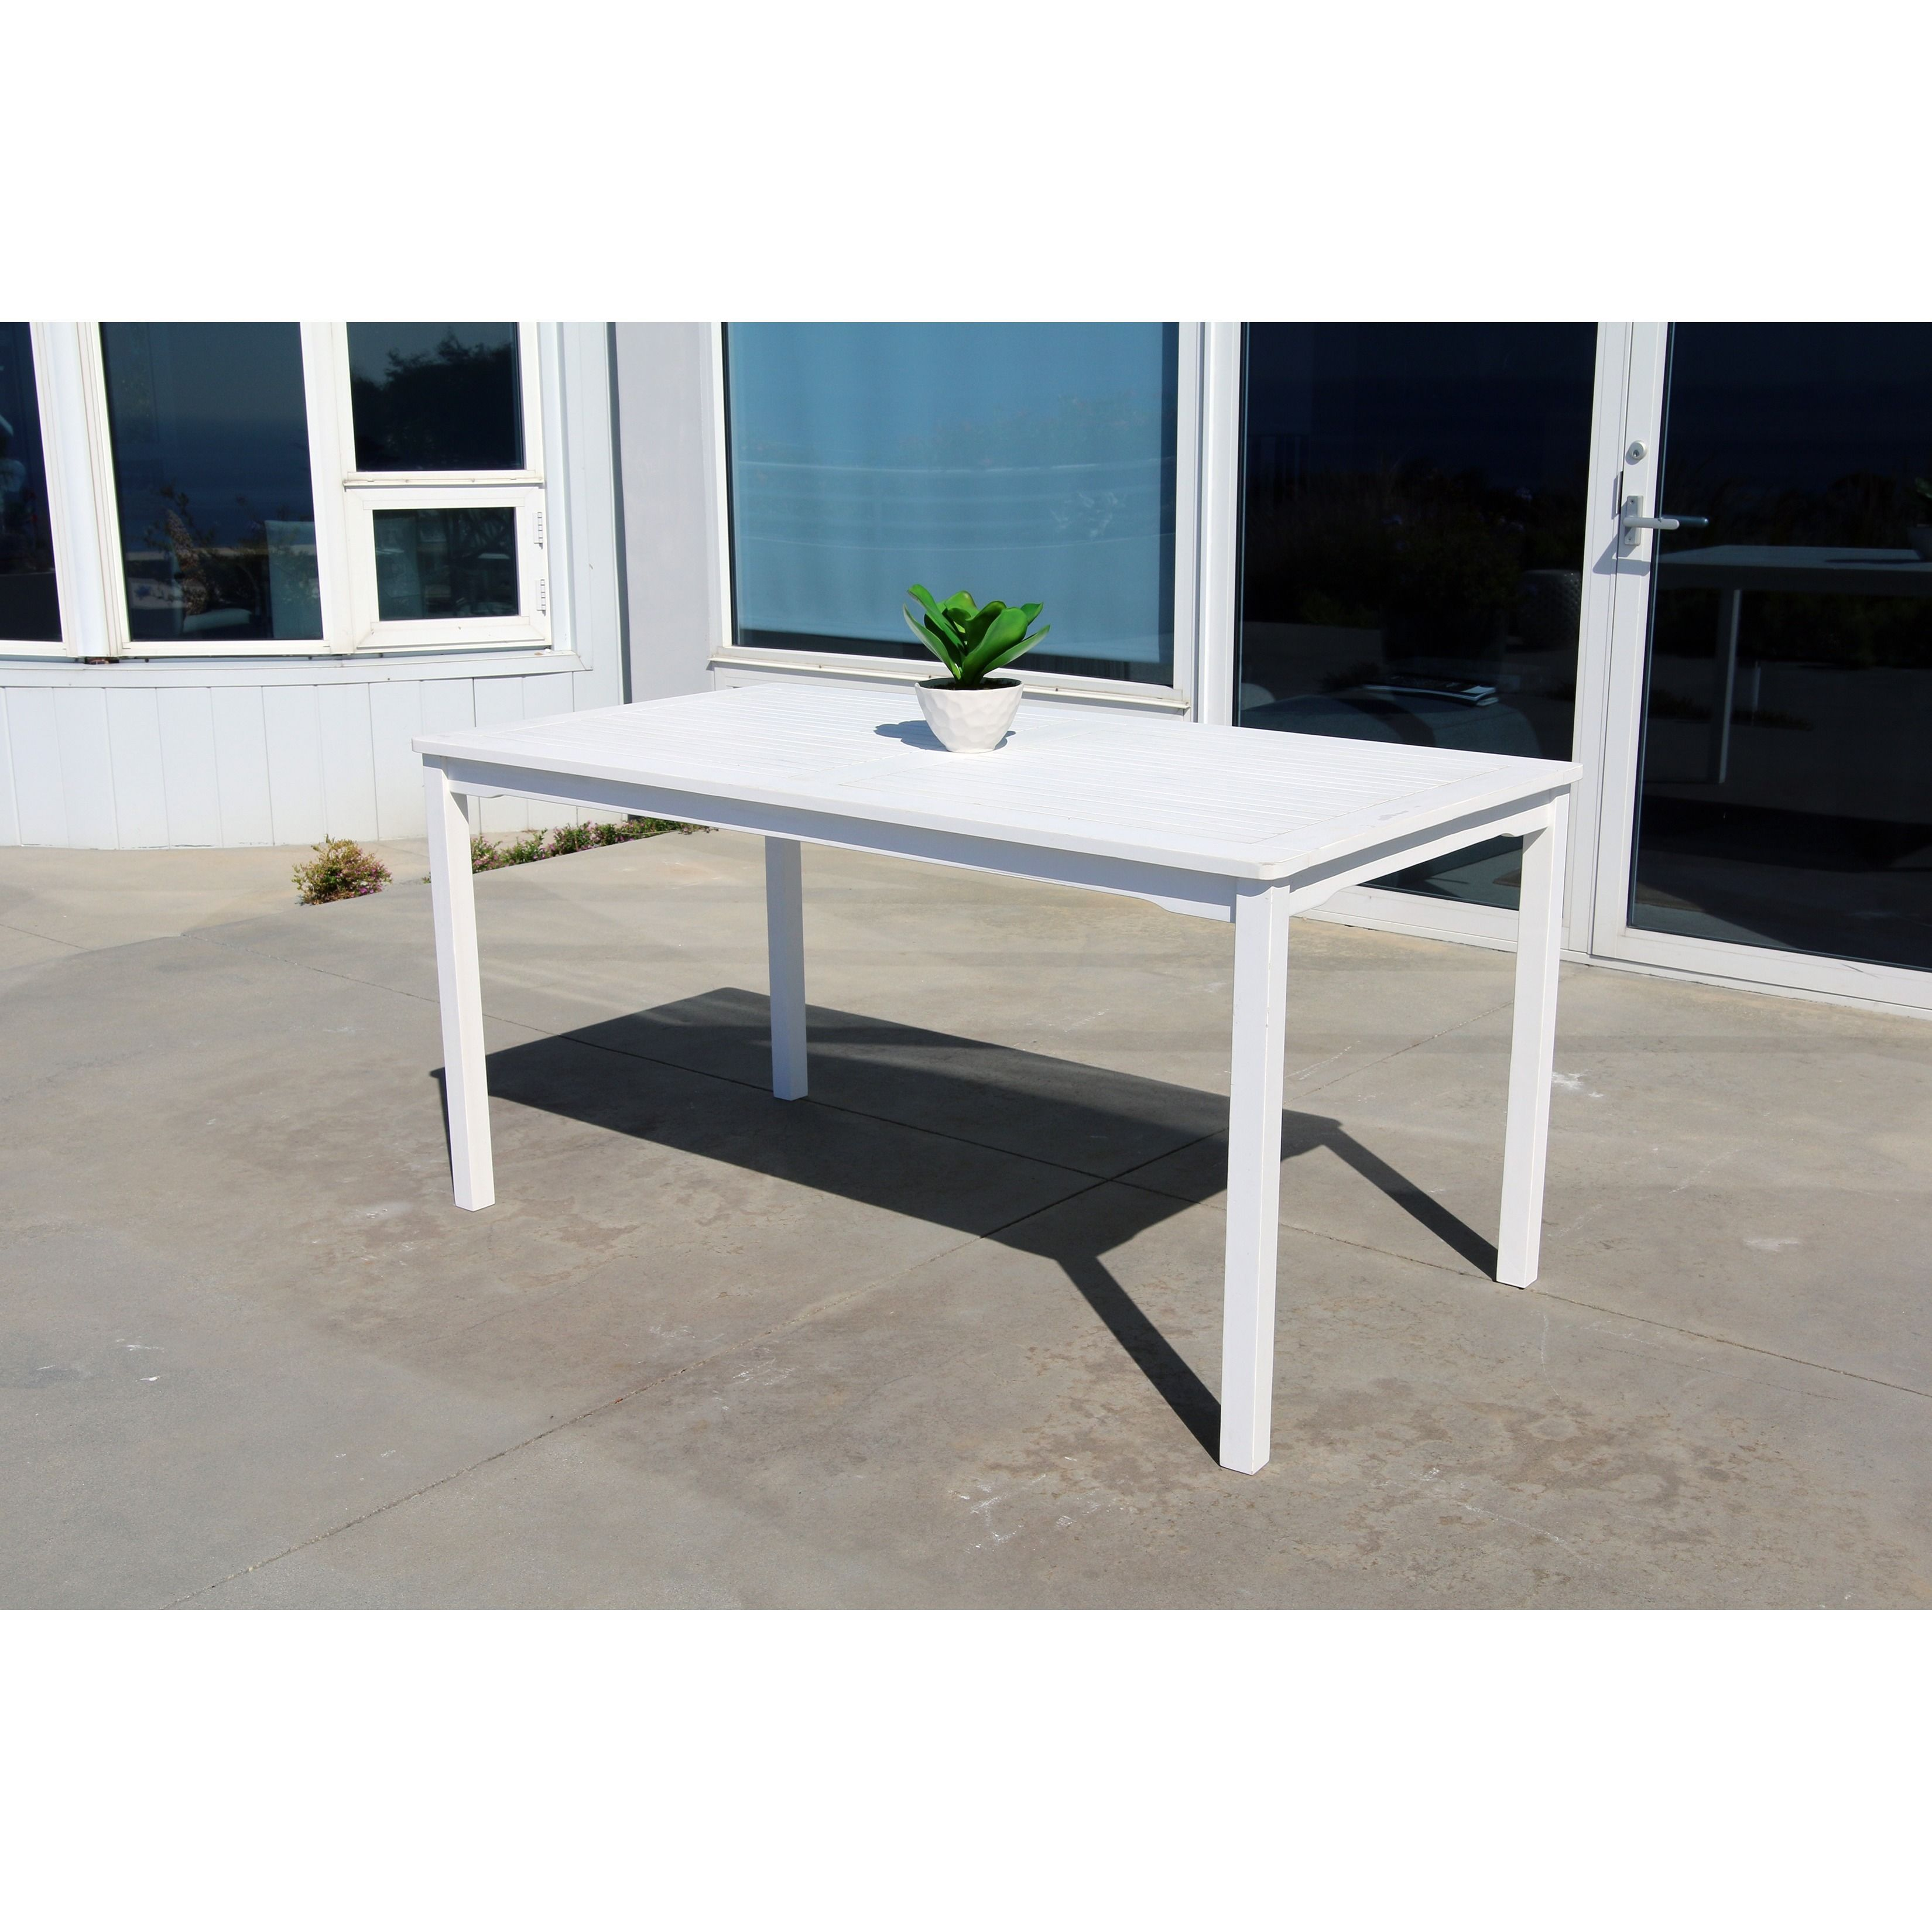 Bradley Outdoor Wood Rectangular Dining Table (Outdoor Furniture), White, Patio Furniture